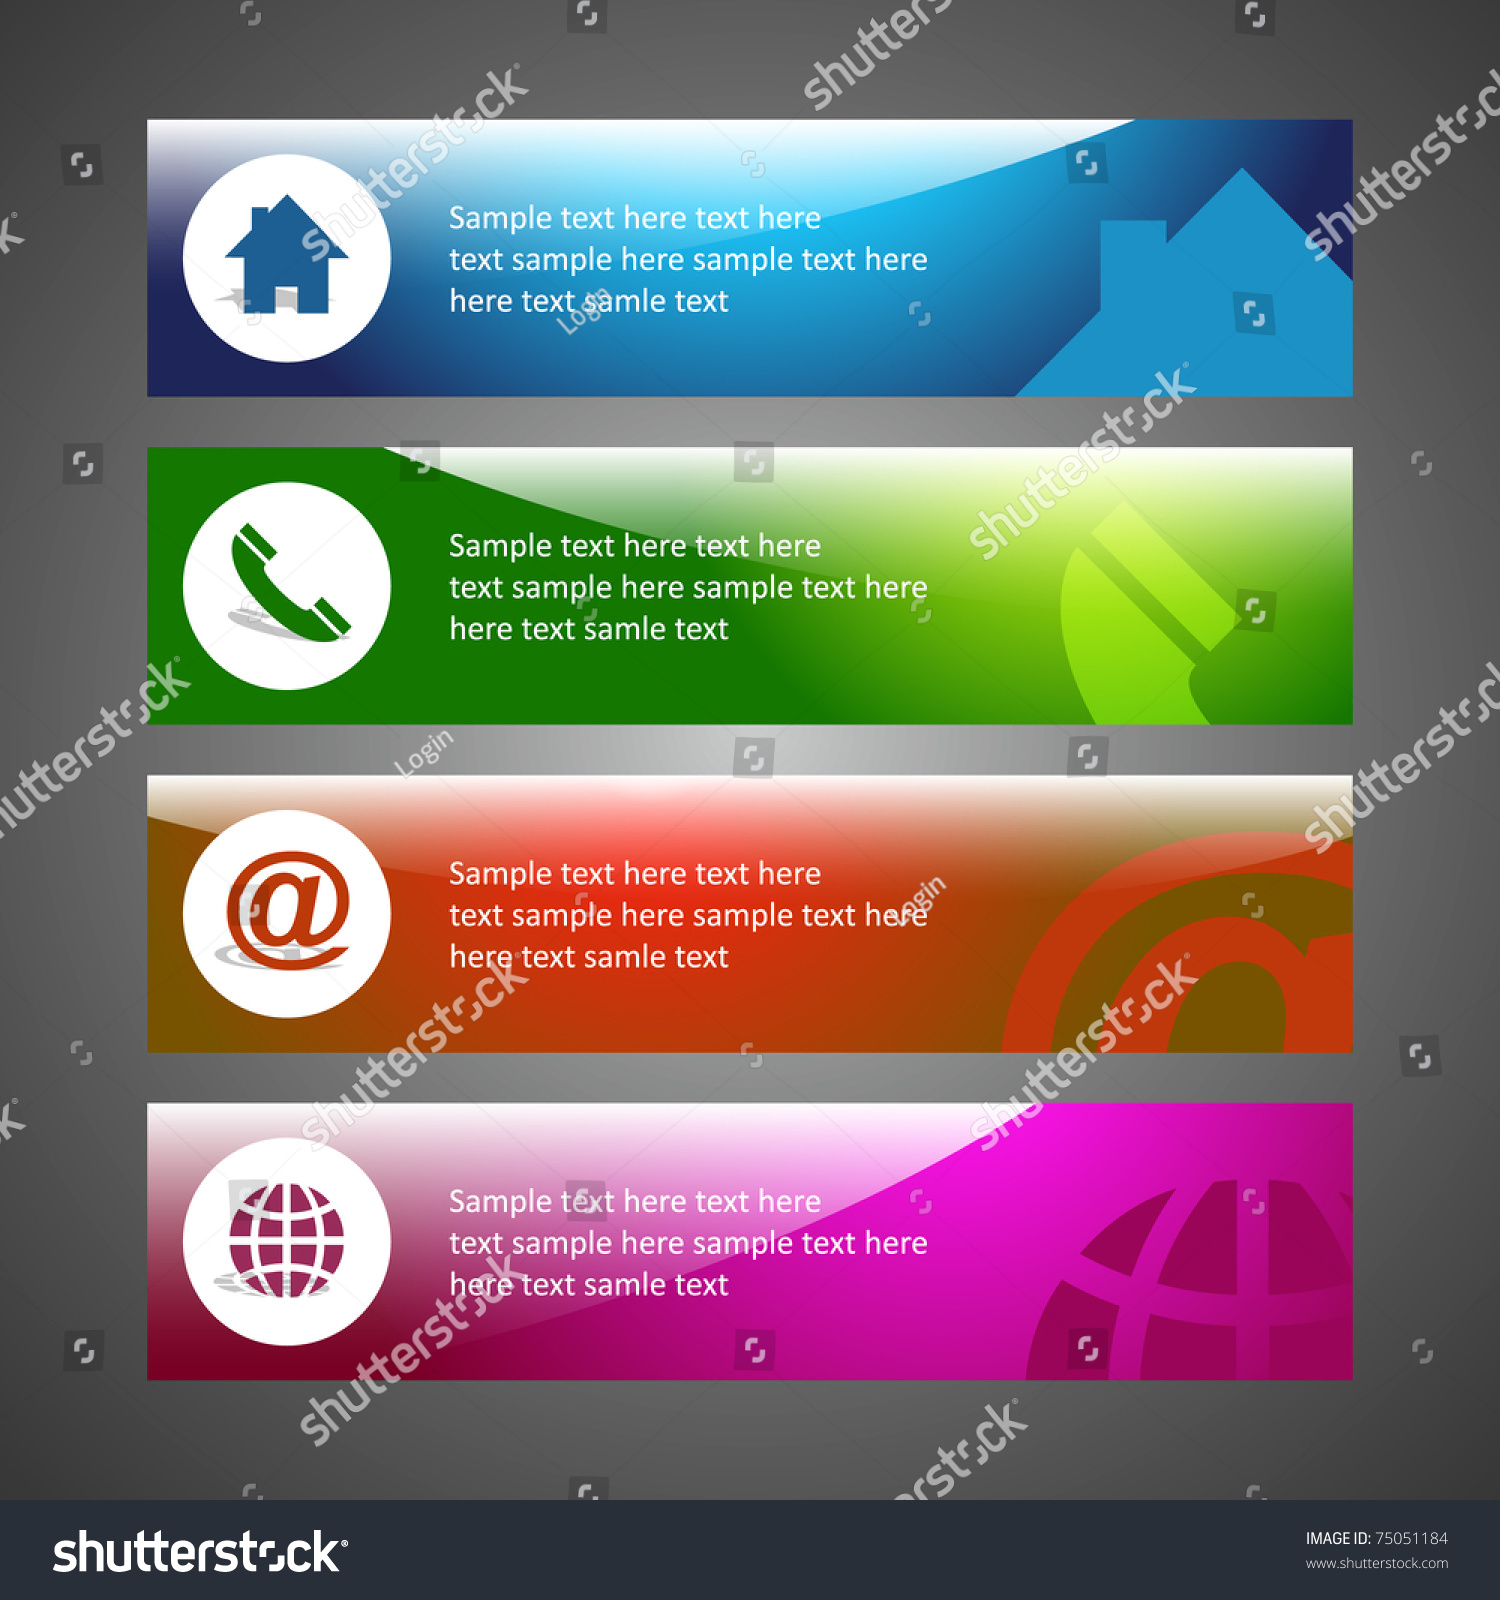 Background image email support - Creative Header Design Background Template Email Home Phone Internet Support